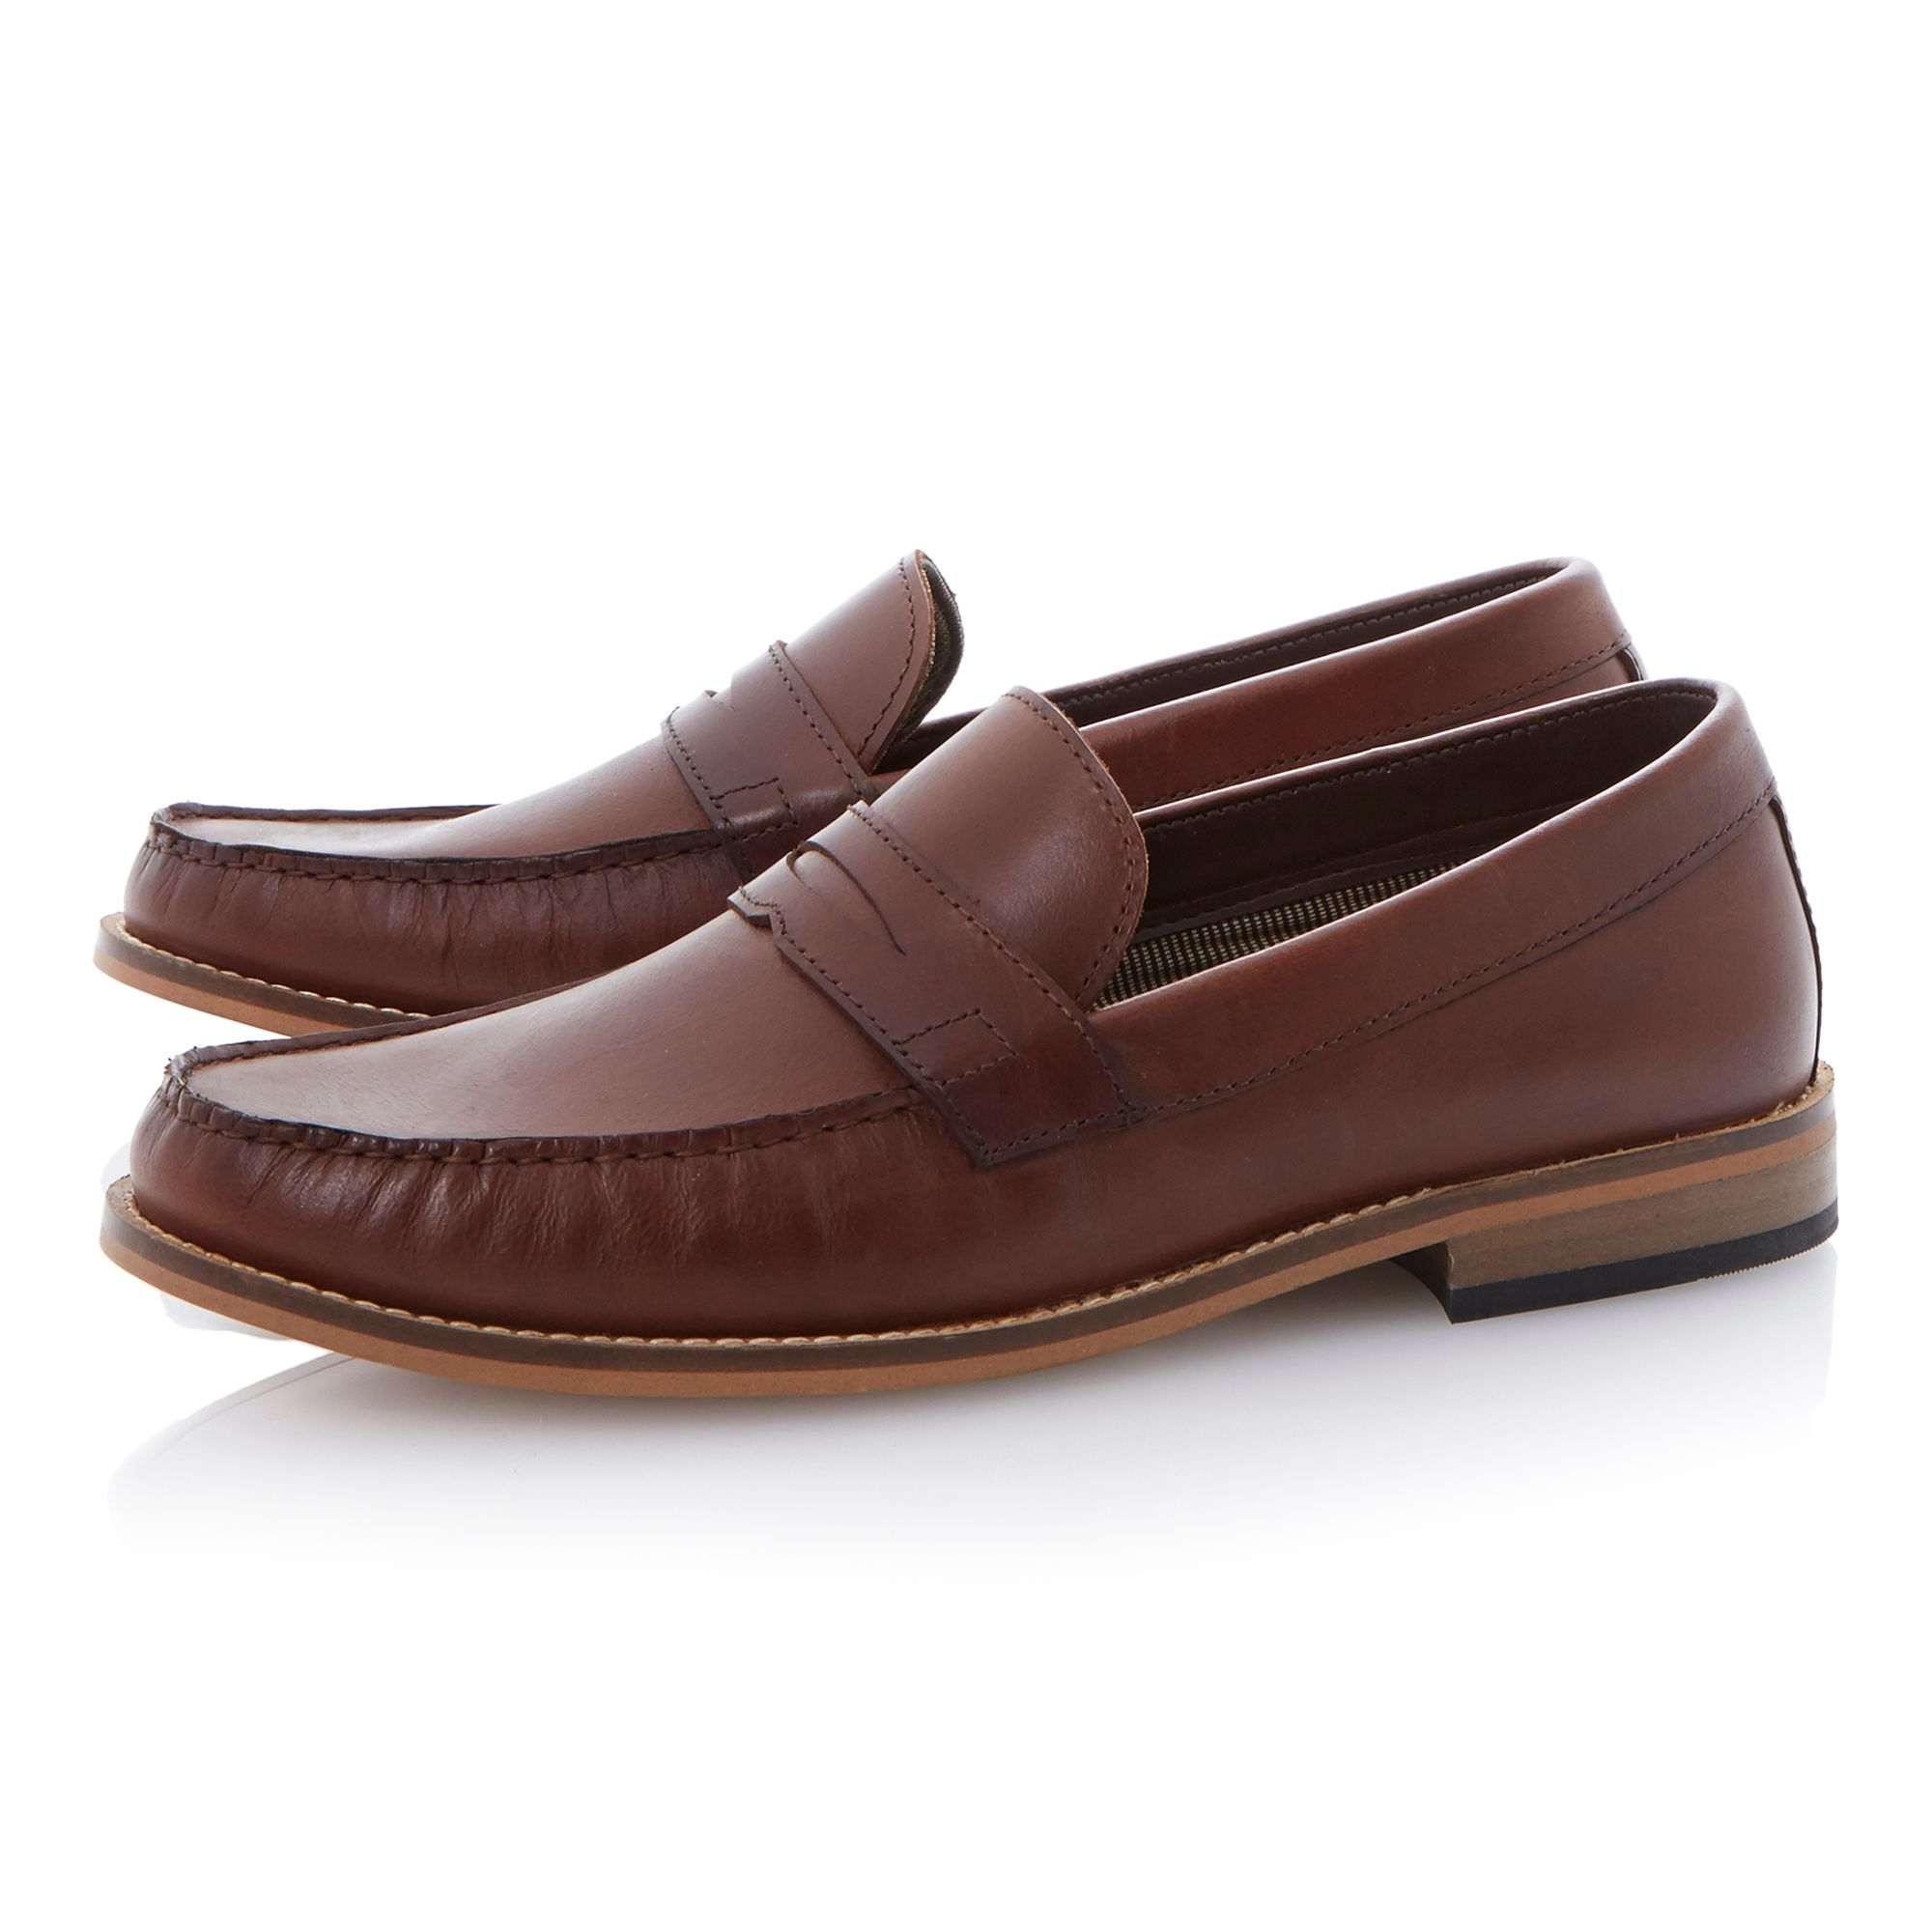 Belgium penny loafers